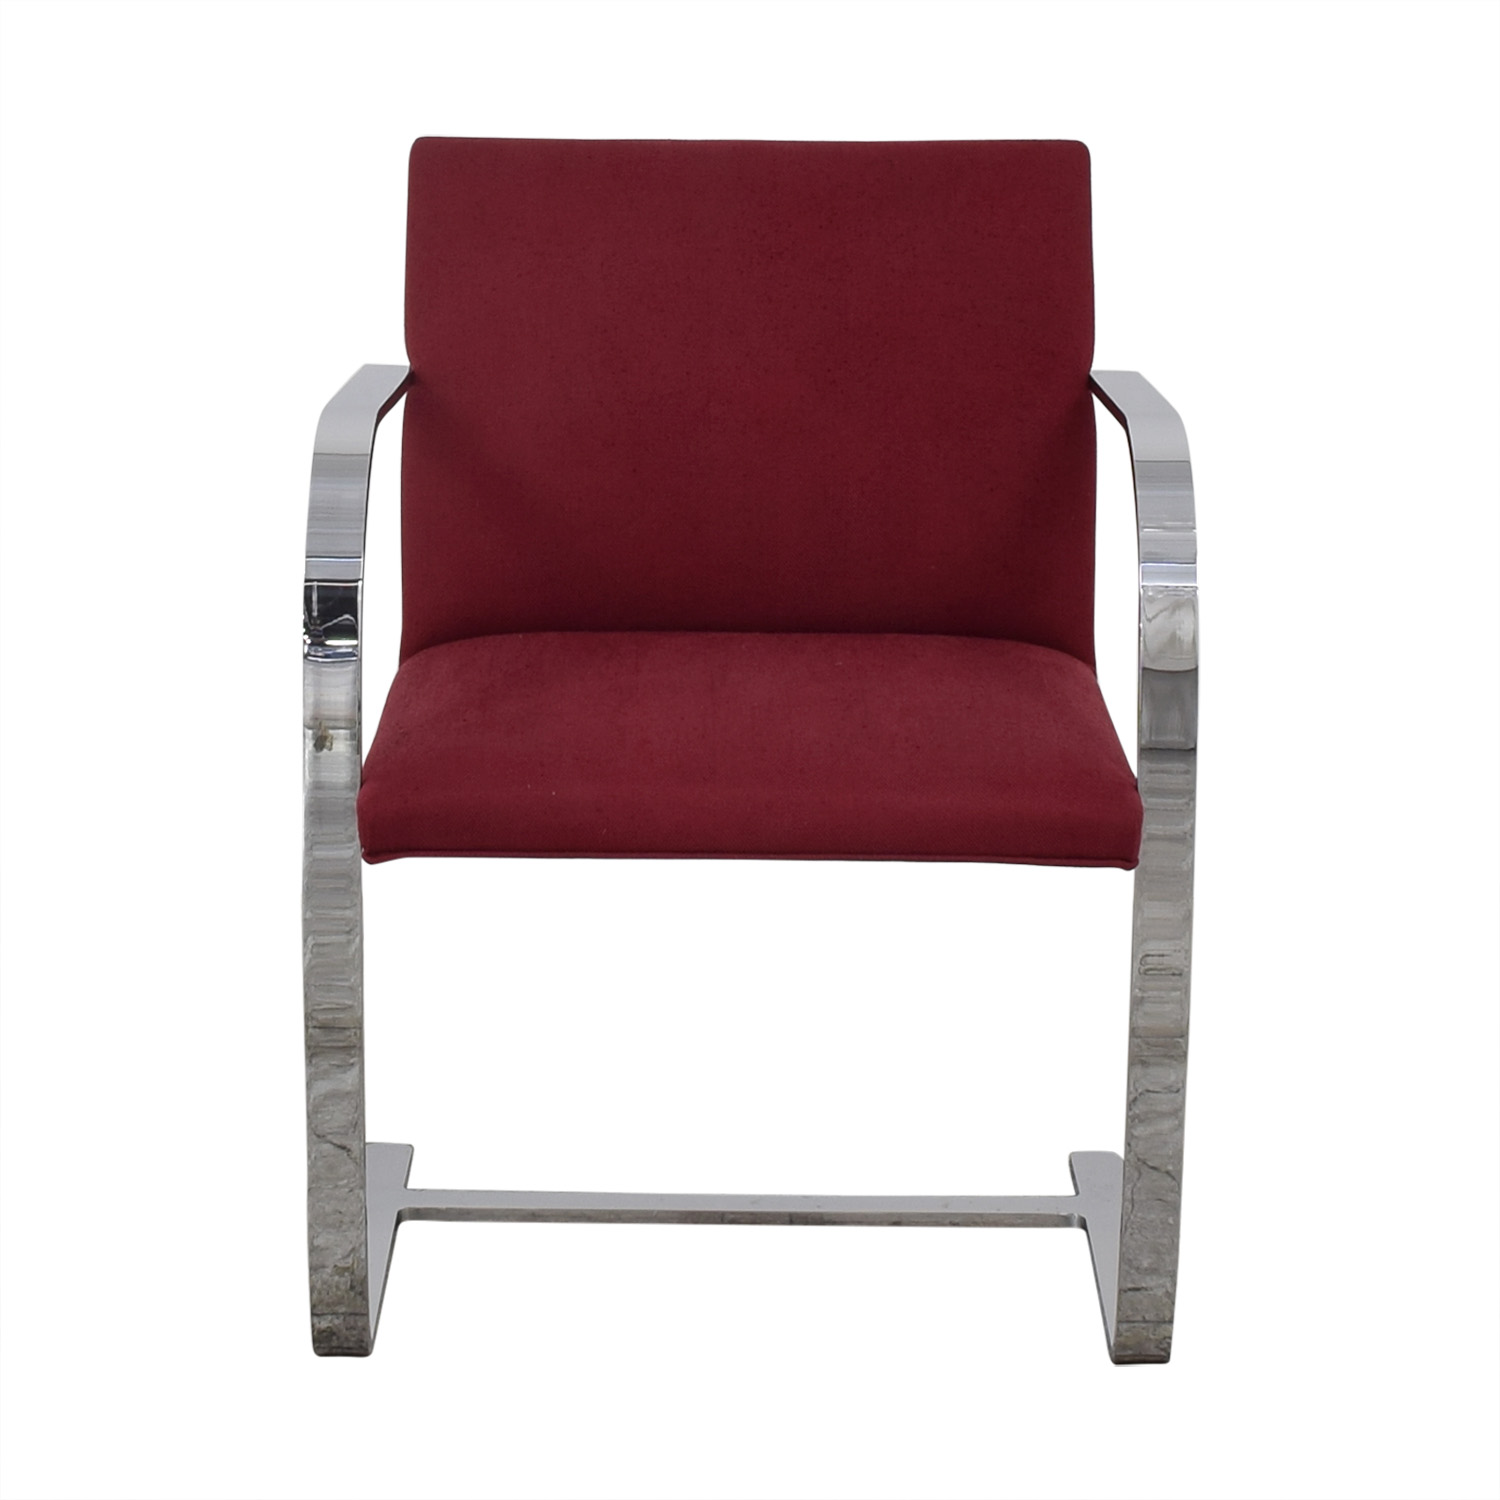 Knoll Knoll BRNO Chair with Flat Bar Frame red & silver